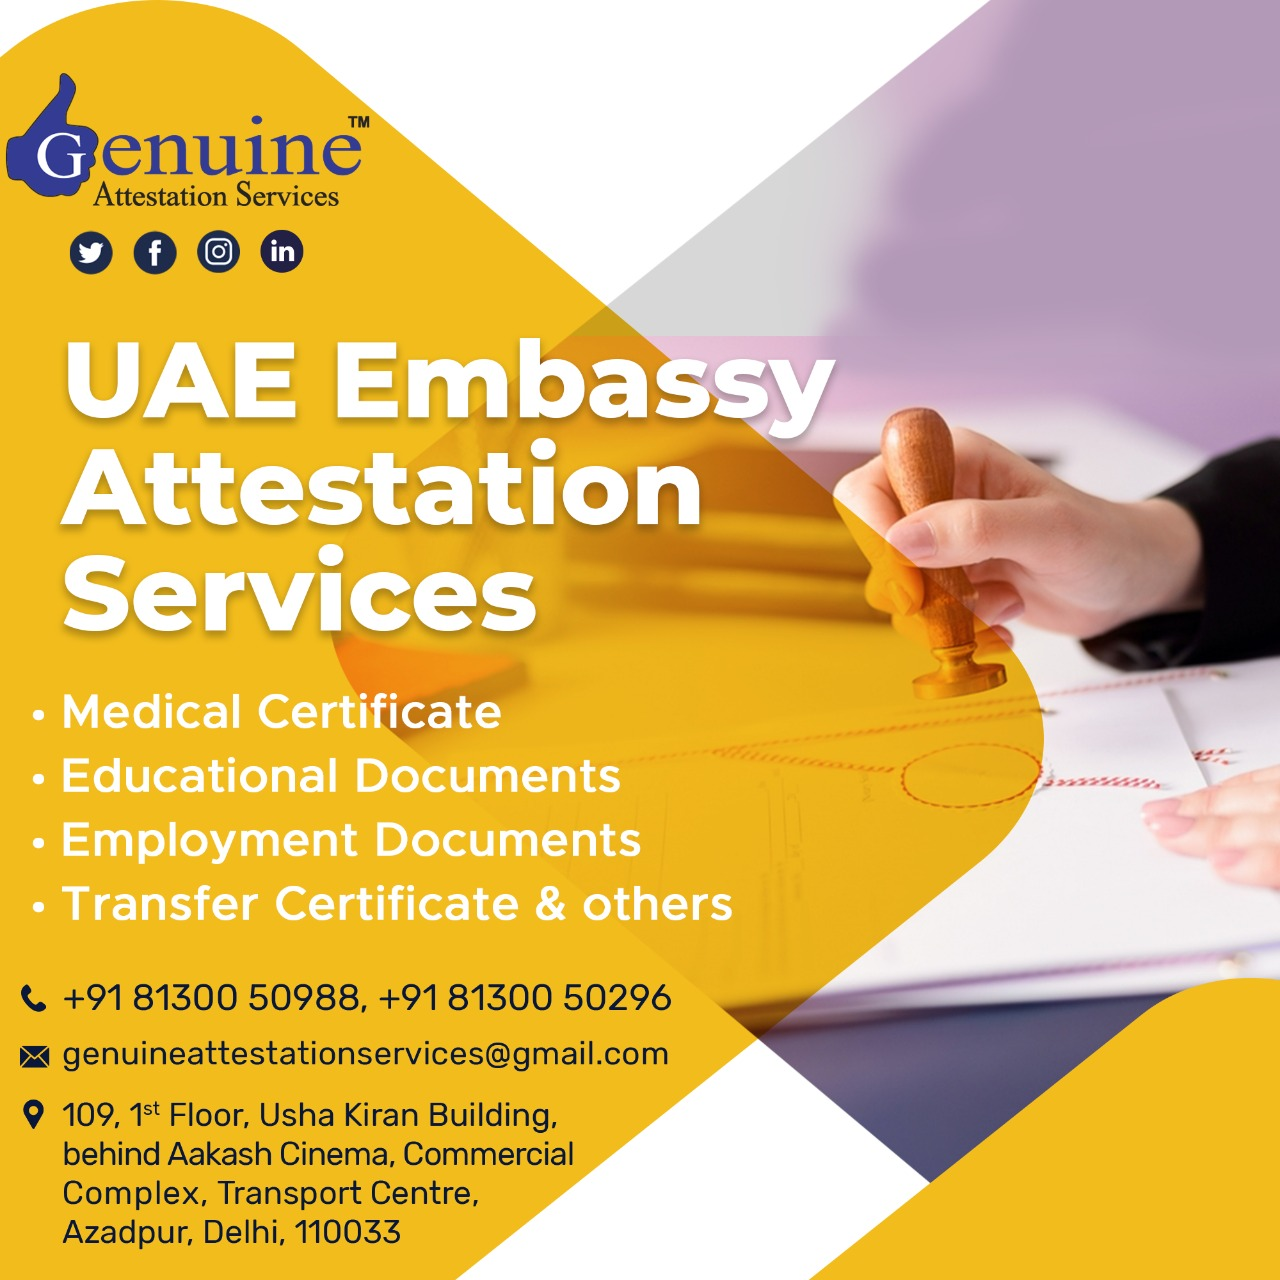 Certificate Attestation For UAE - genuineattestationservices.com